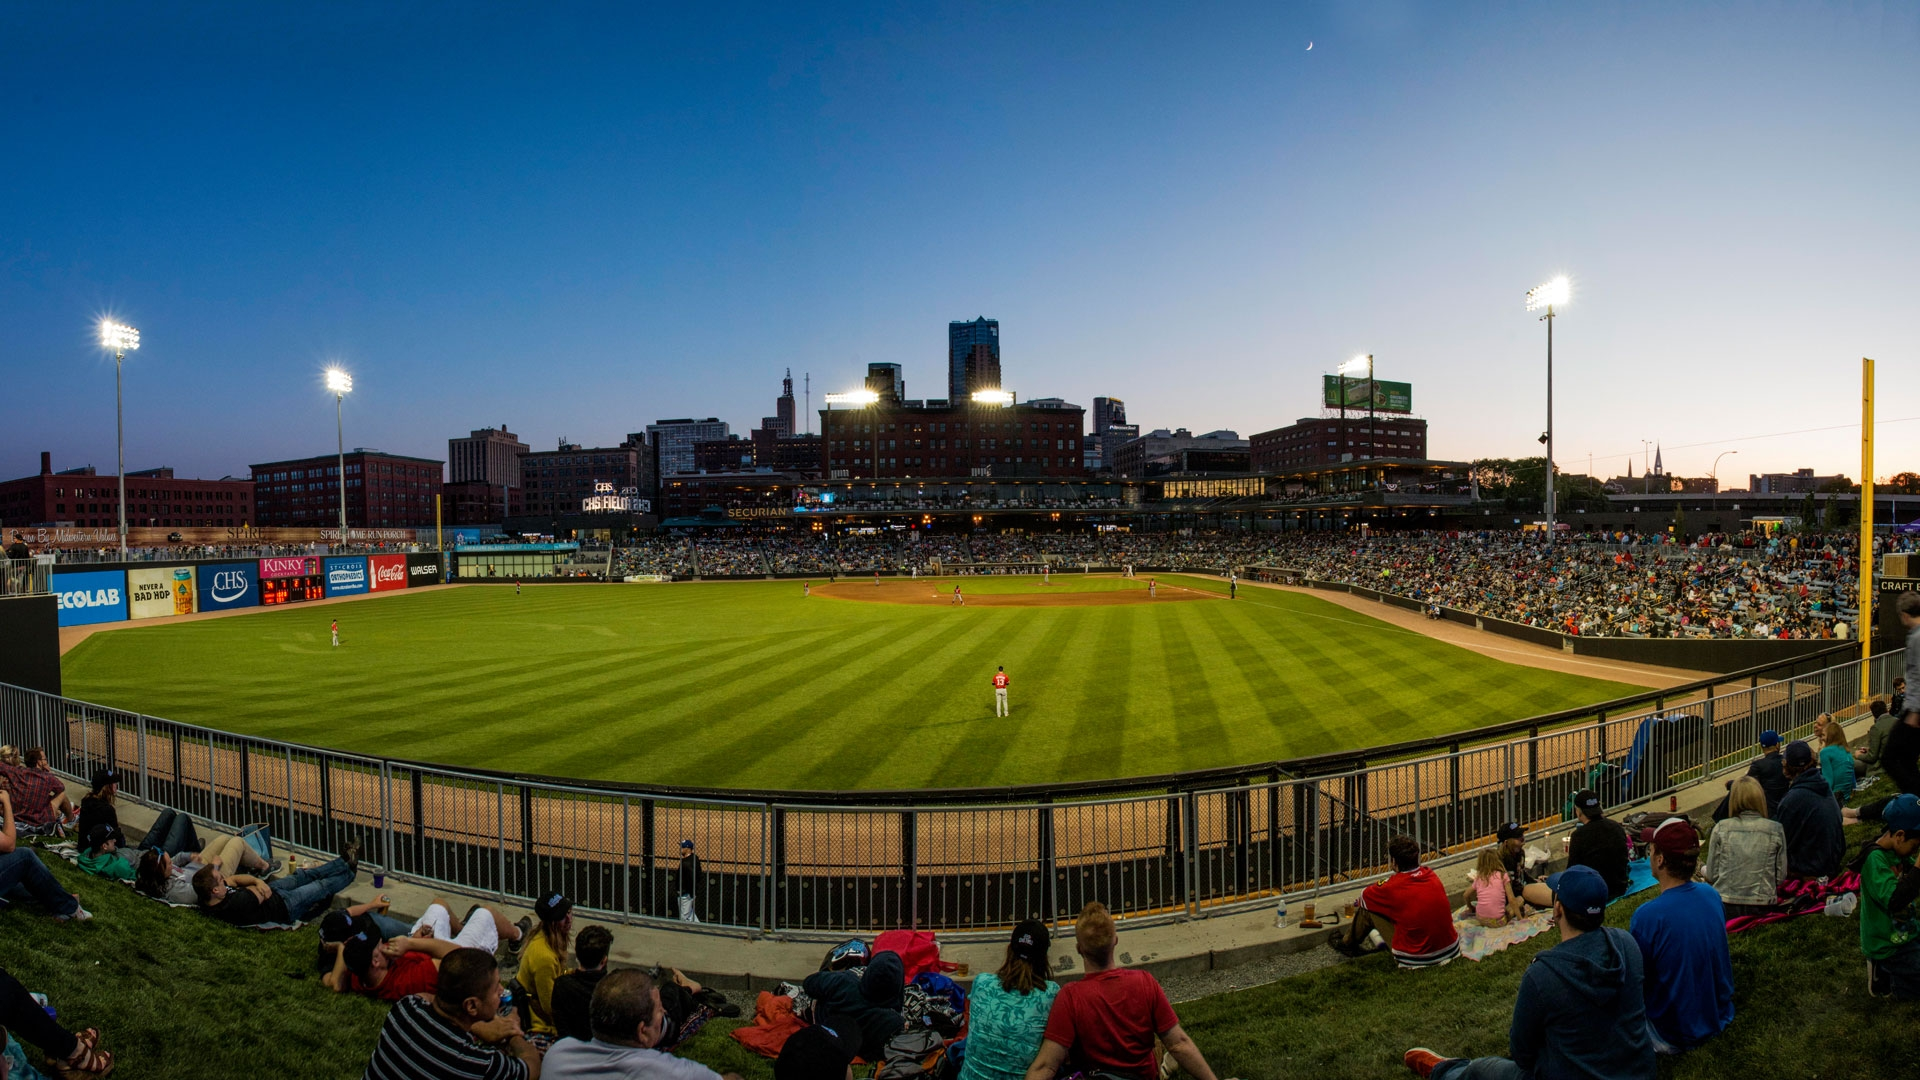 CHS Field is home to the St. Paul Saints and is capable of hosting sporting events of various sizes at the professional and amateur level.